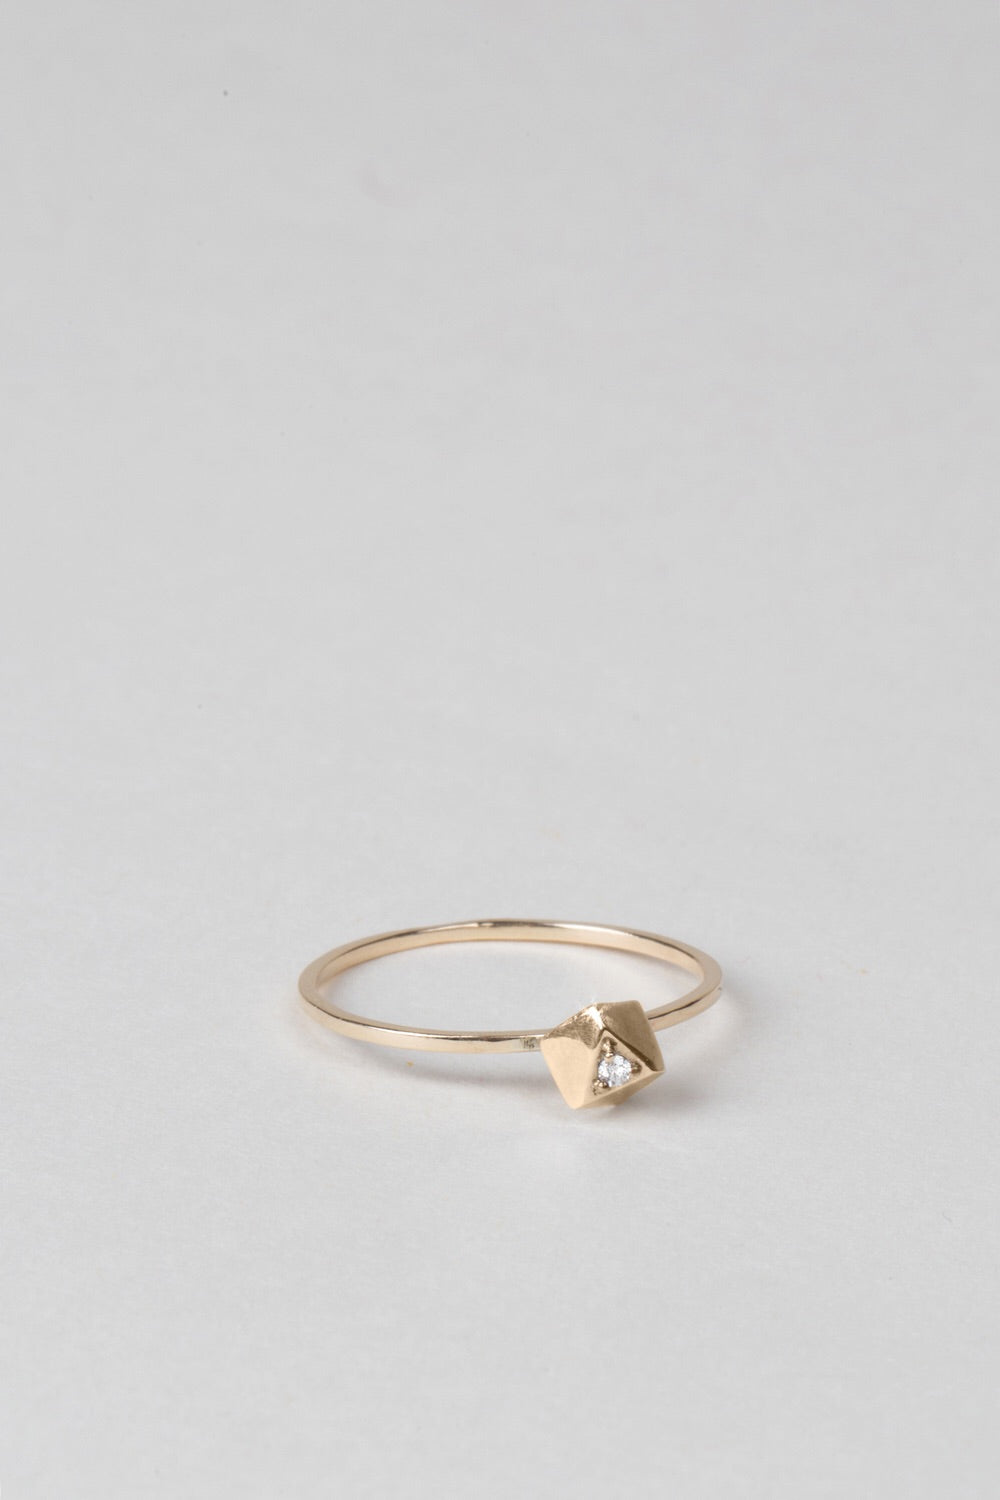 Planar Ring - Gourmet Gold